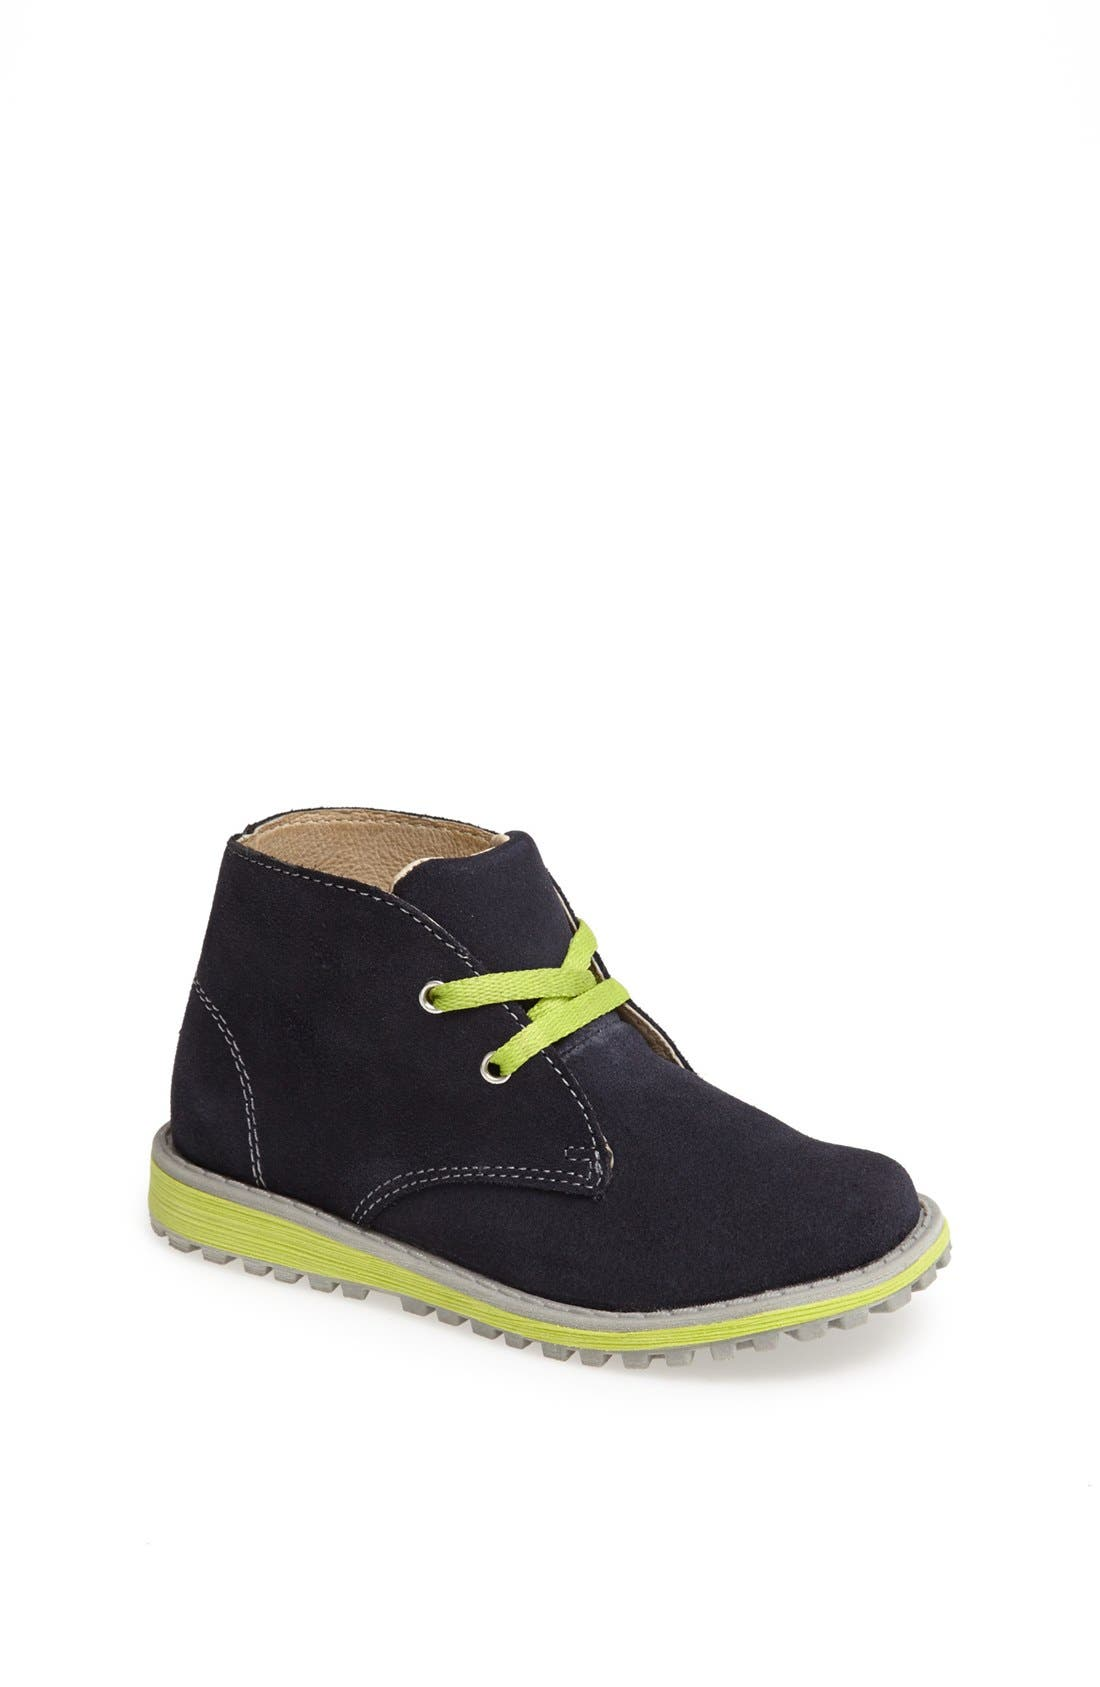 Main Image - Umi 'Hector' Boot (Toddler & Little Kid)